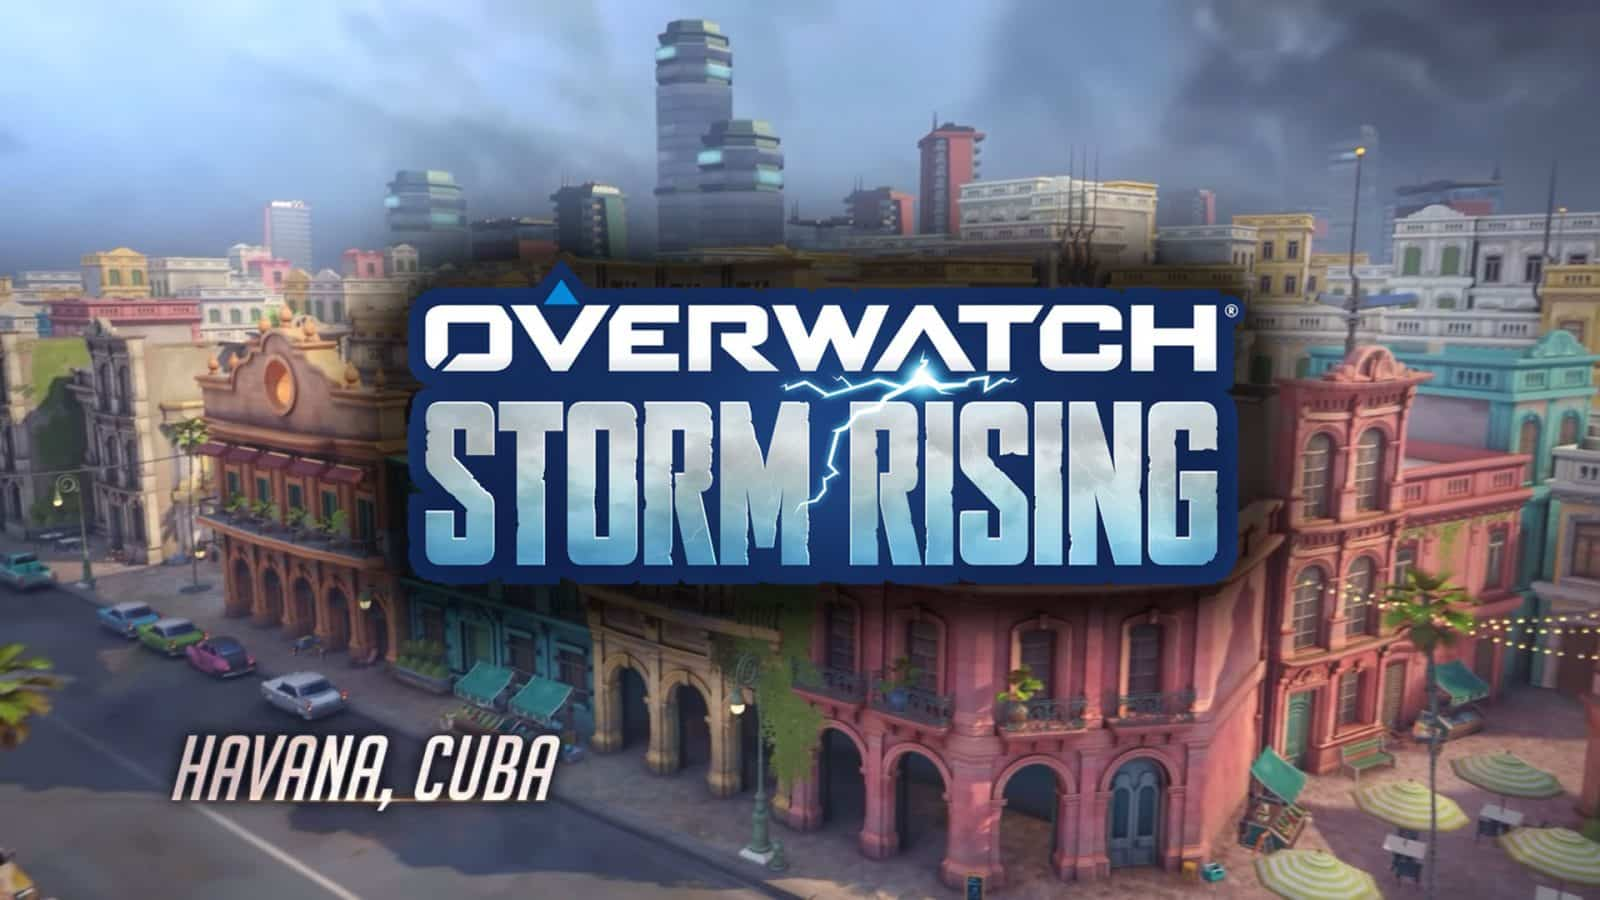 Overwatch Storm Rising, A Disappointment From Launch